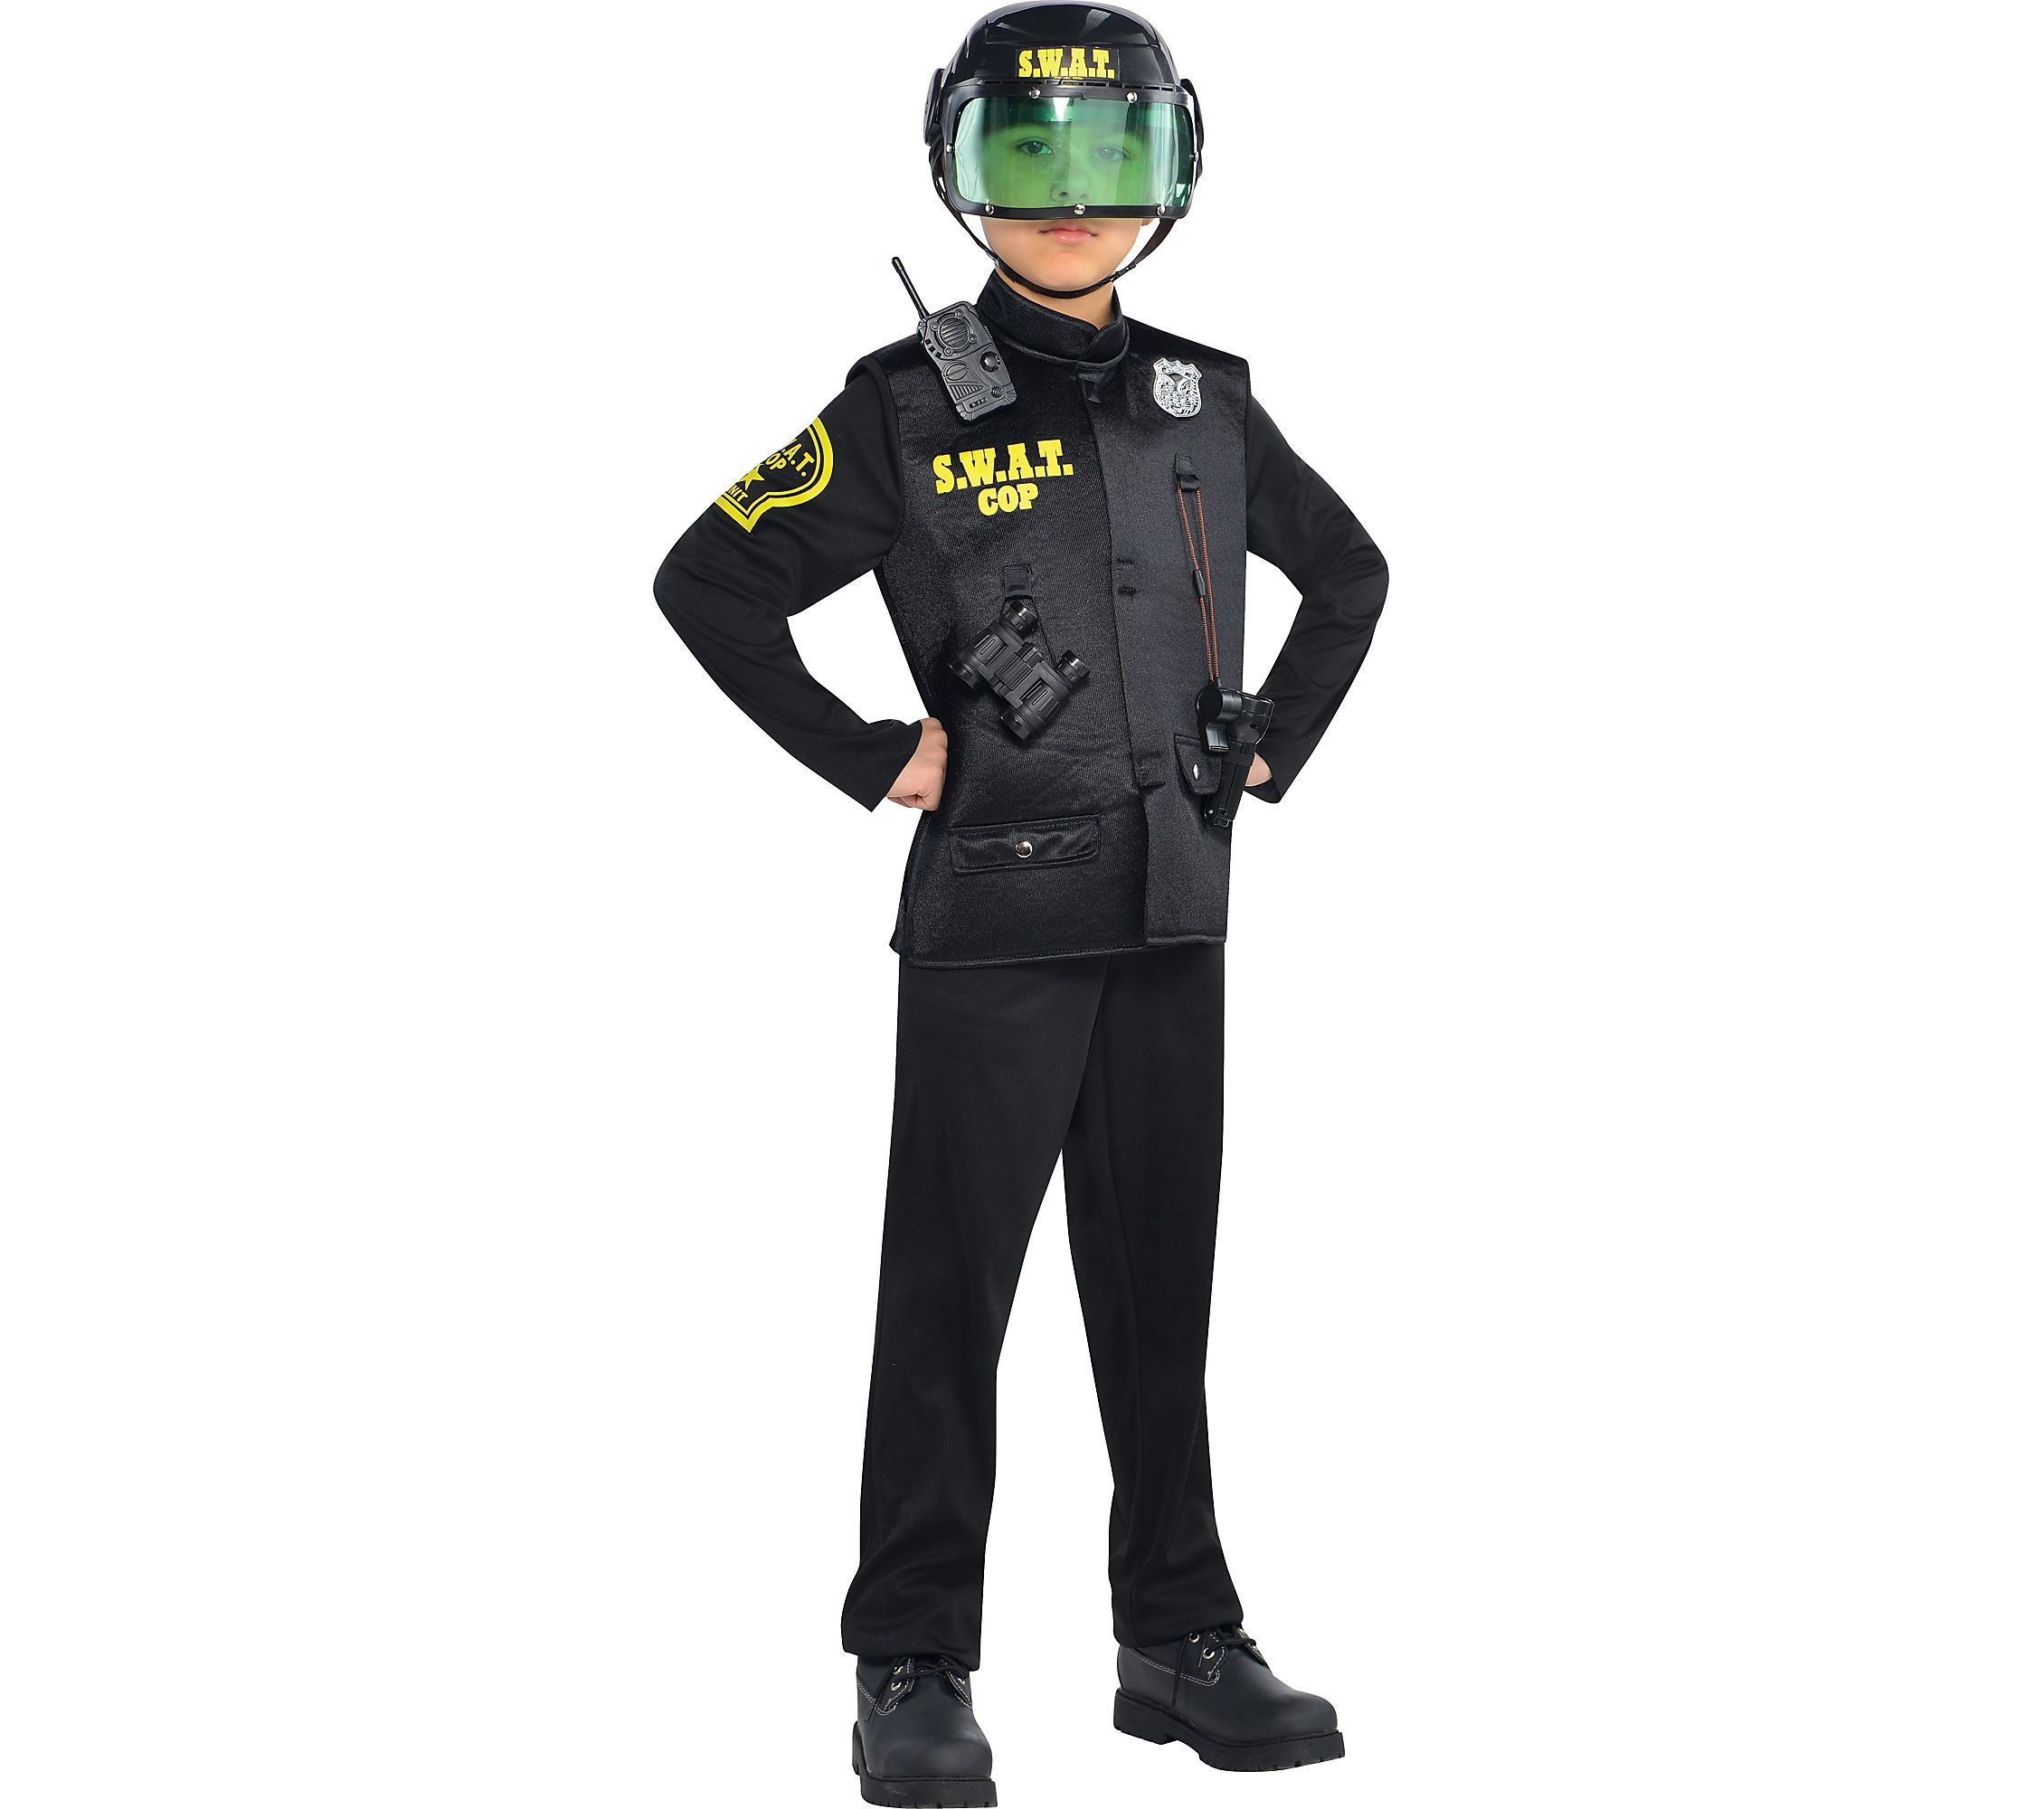 AMSCAN SWAT Cop Halloween Costume for Boys, Small, with Included Accessories